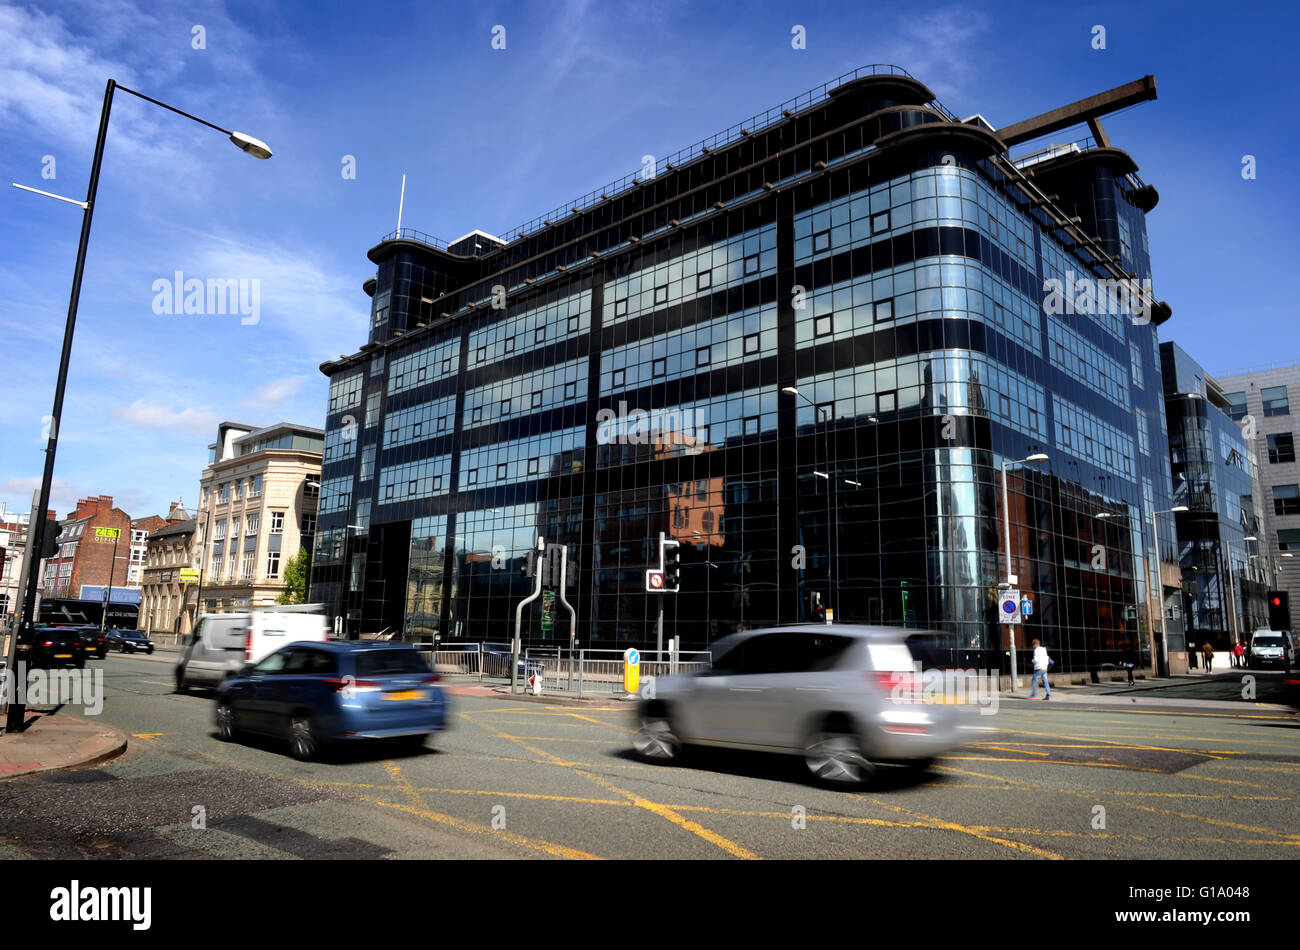 Former Daily Express Building, Northern Quarter, Manchester UK. Picture by Paul Heyes, Tuesday May 10, 2016. - Stock Image